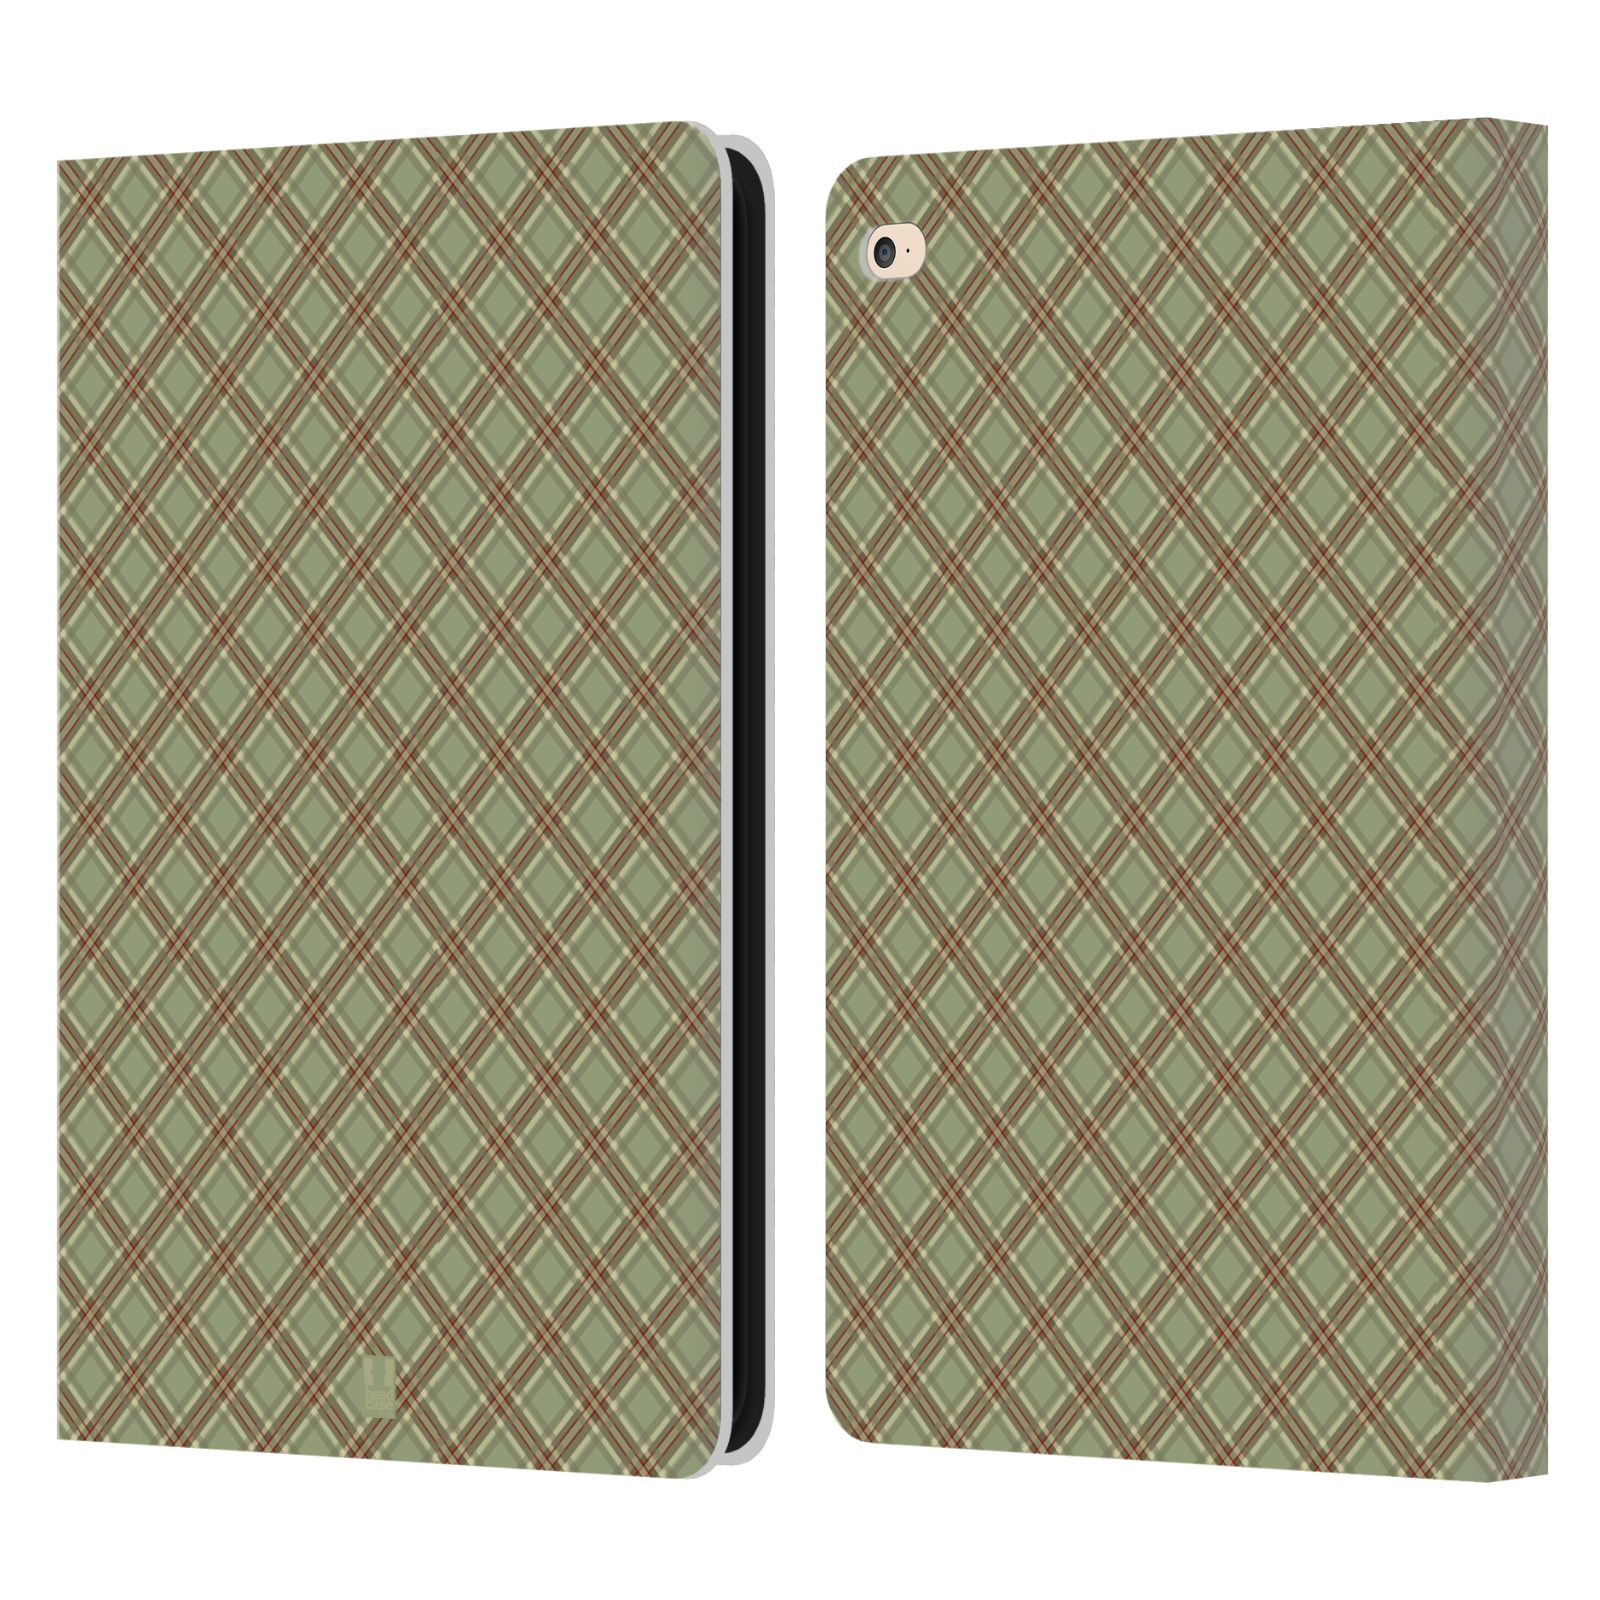 Leather Book Cover Pattern : Head case designs plaid pattern leather book wallet